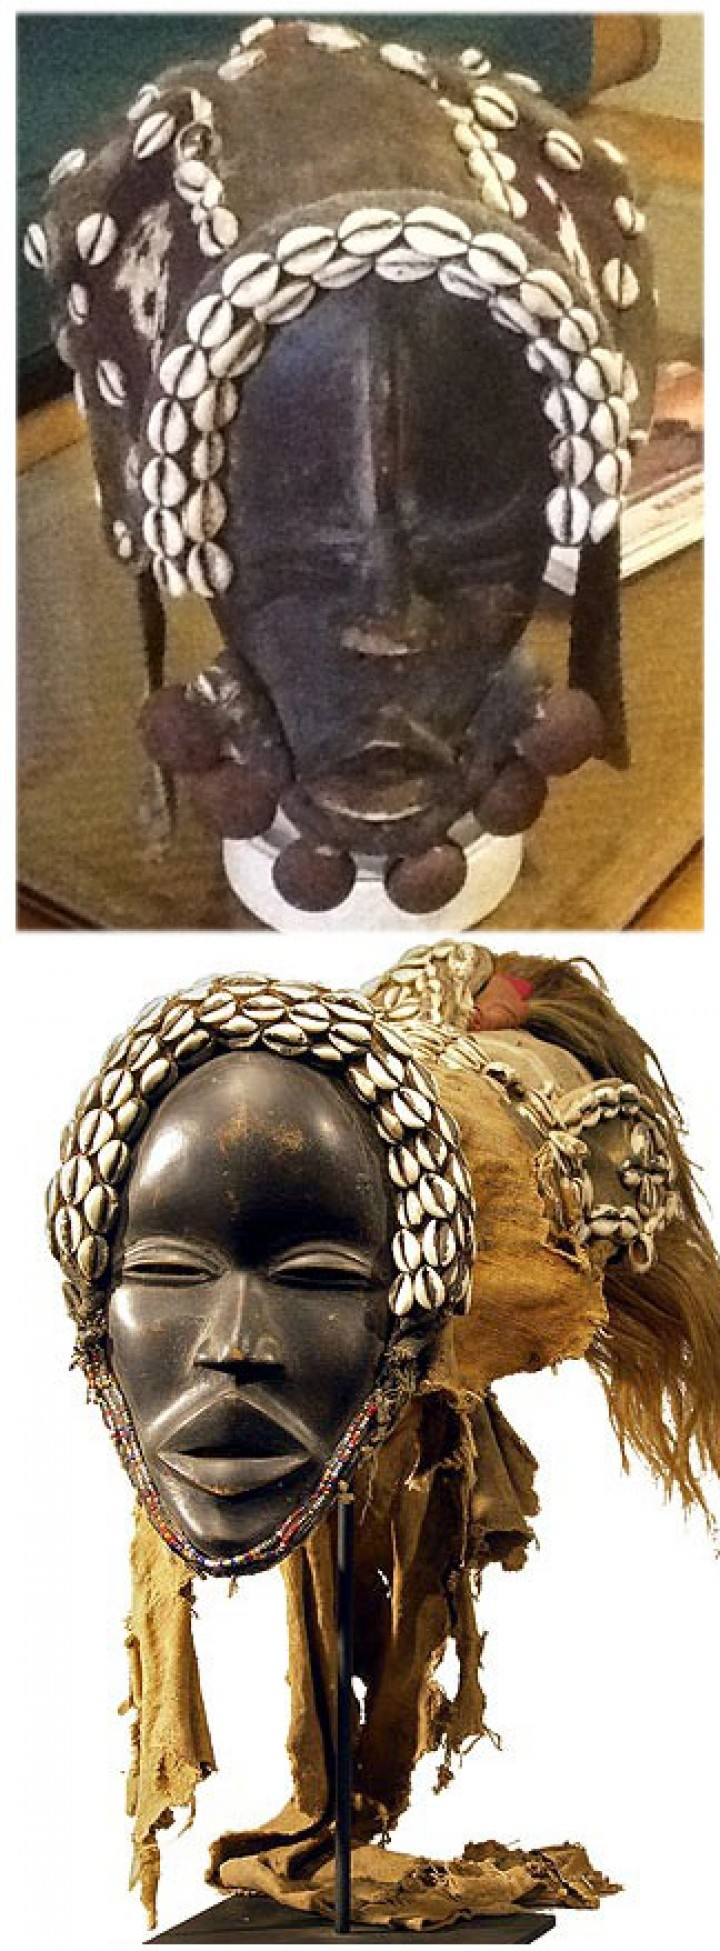 The price of African masks